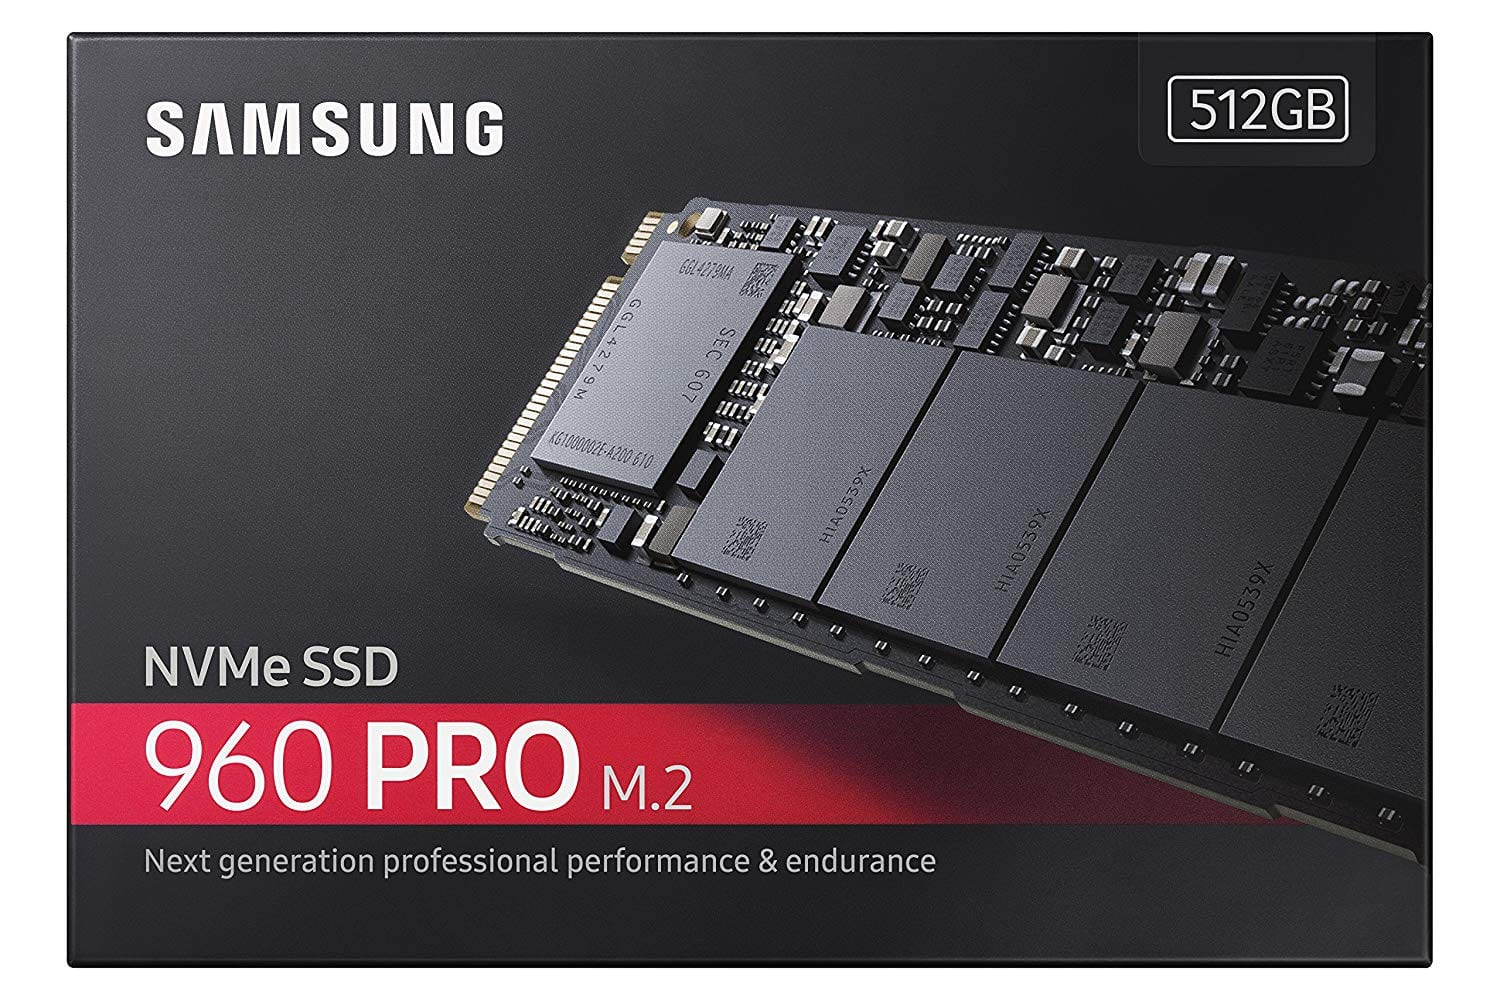 SAMSUNG 960 PRO M.2 512GB NVMe PCI-Express 3.0 x4 Internal Solid State Drive $216